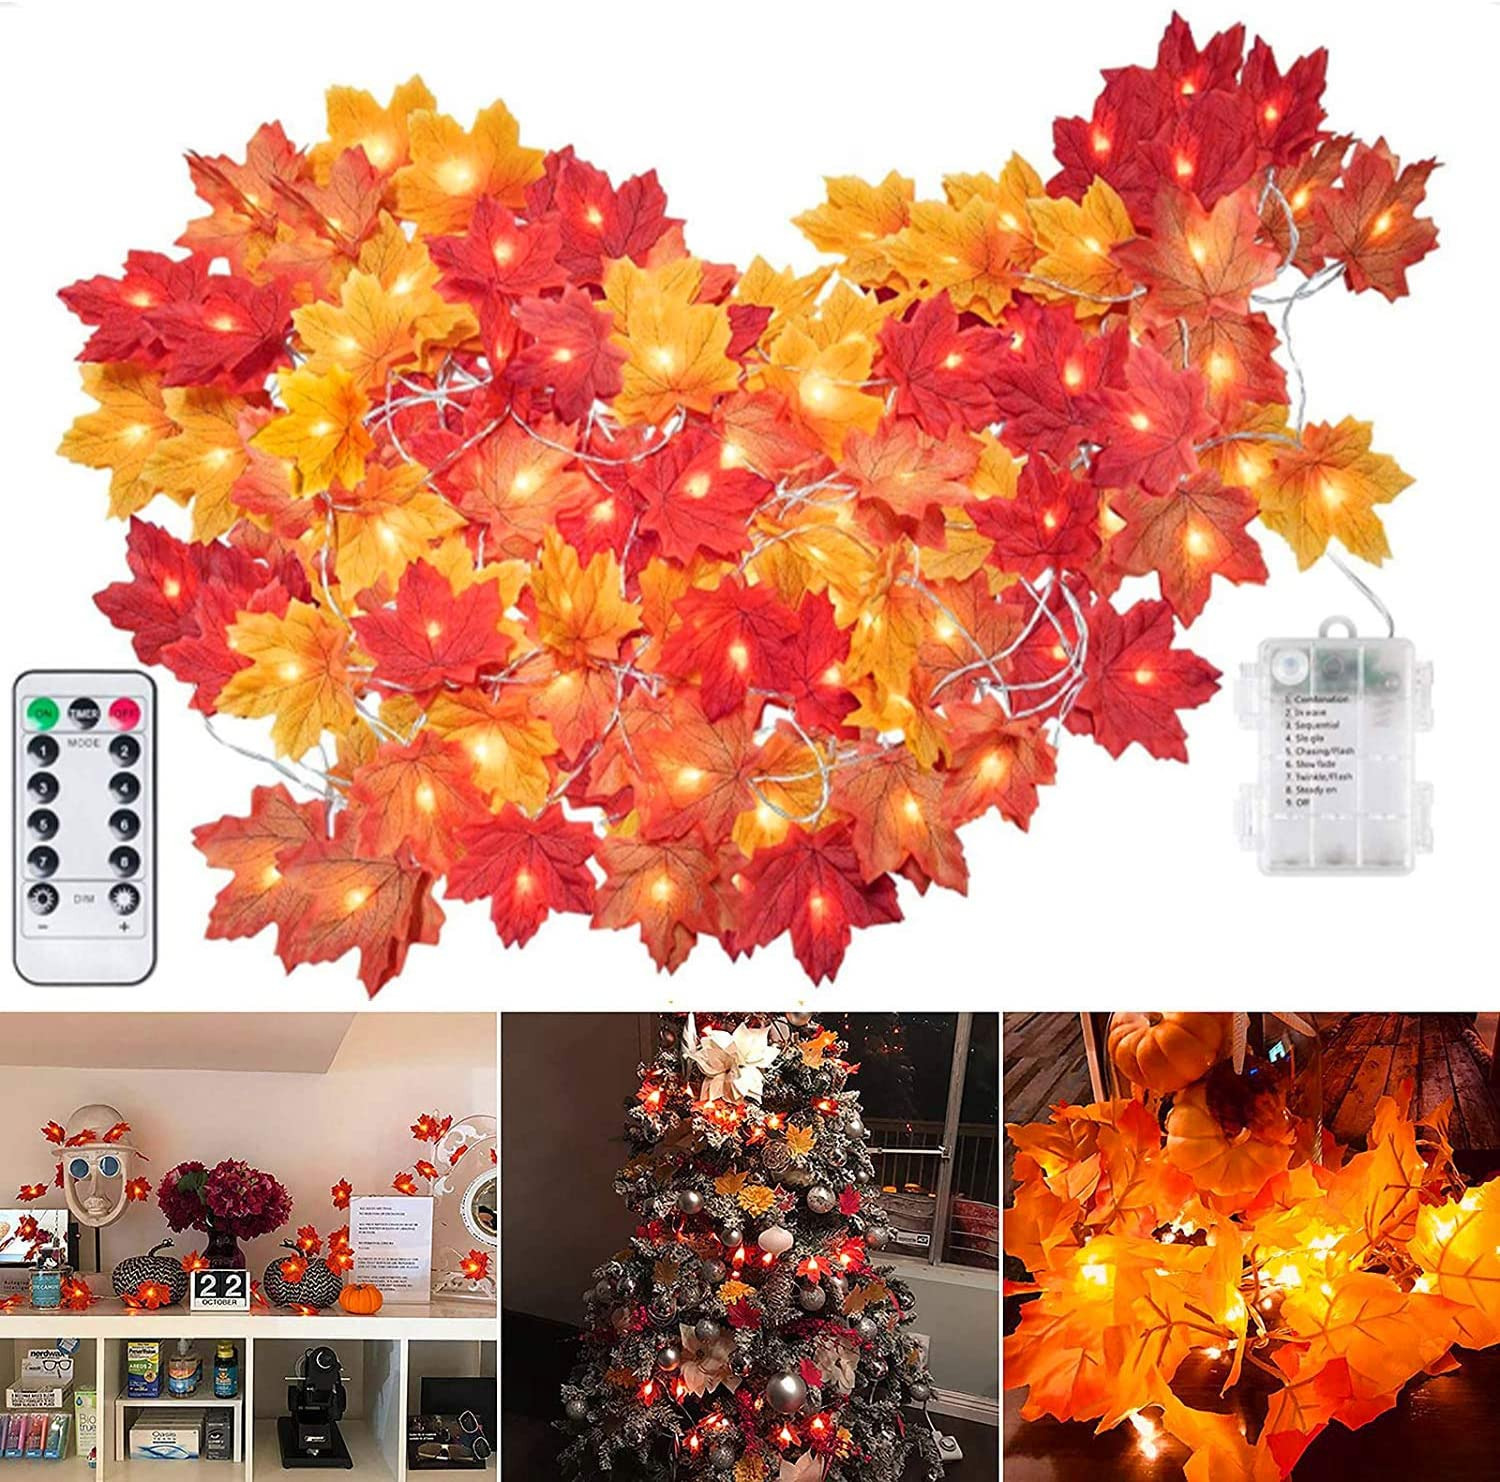 Thanksgiving Fall Maple Leaf String Lights, 20 Feet Length, 40 Led Leaf Garland String Lights Battery Powered, Waterproof Lifelike Orange Fall Garland Lights Decor for Party Indoor Outdoor